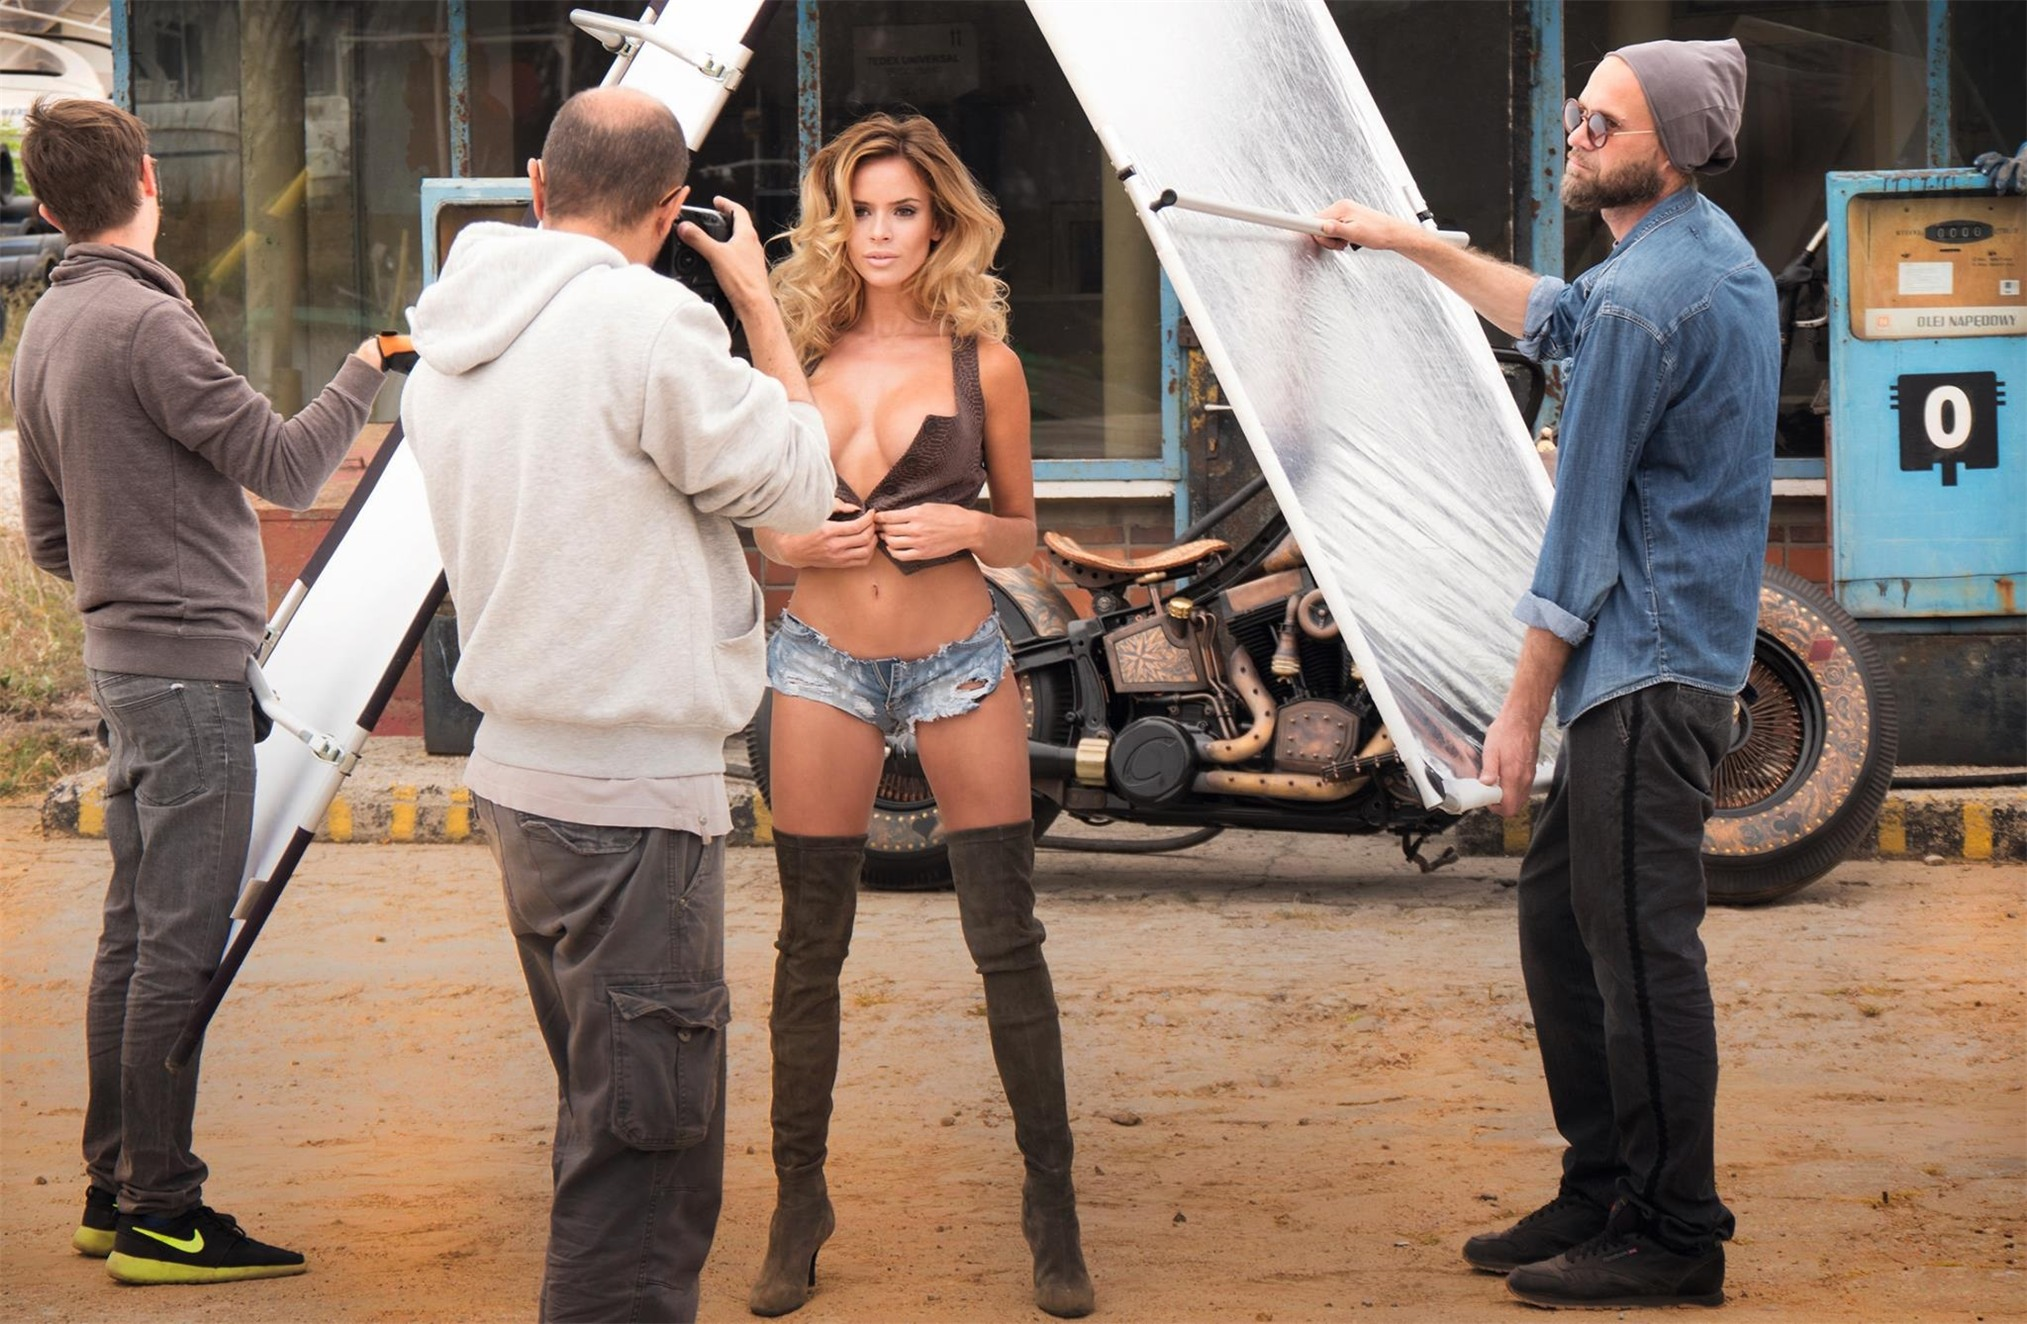 Inter Cars SA 2017 sexy calendar / behind the scene